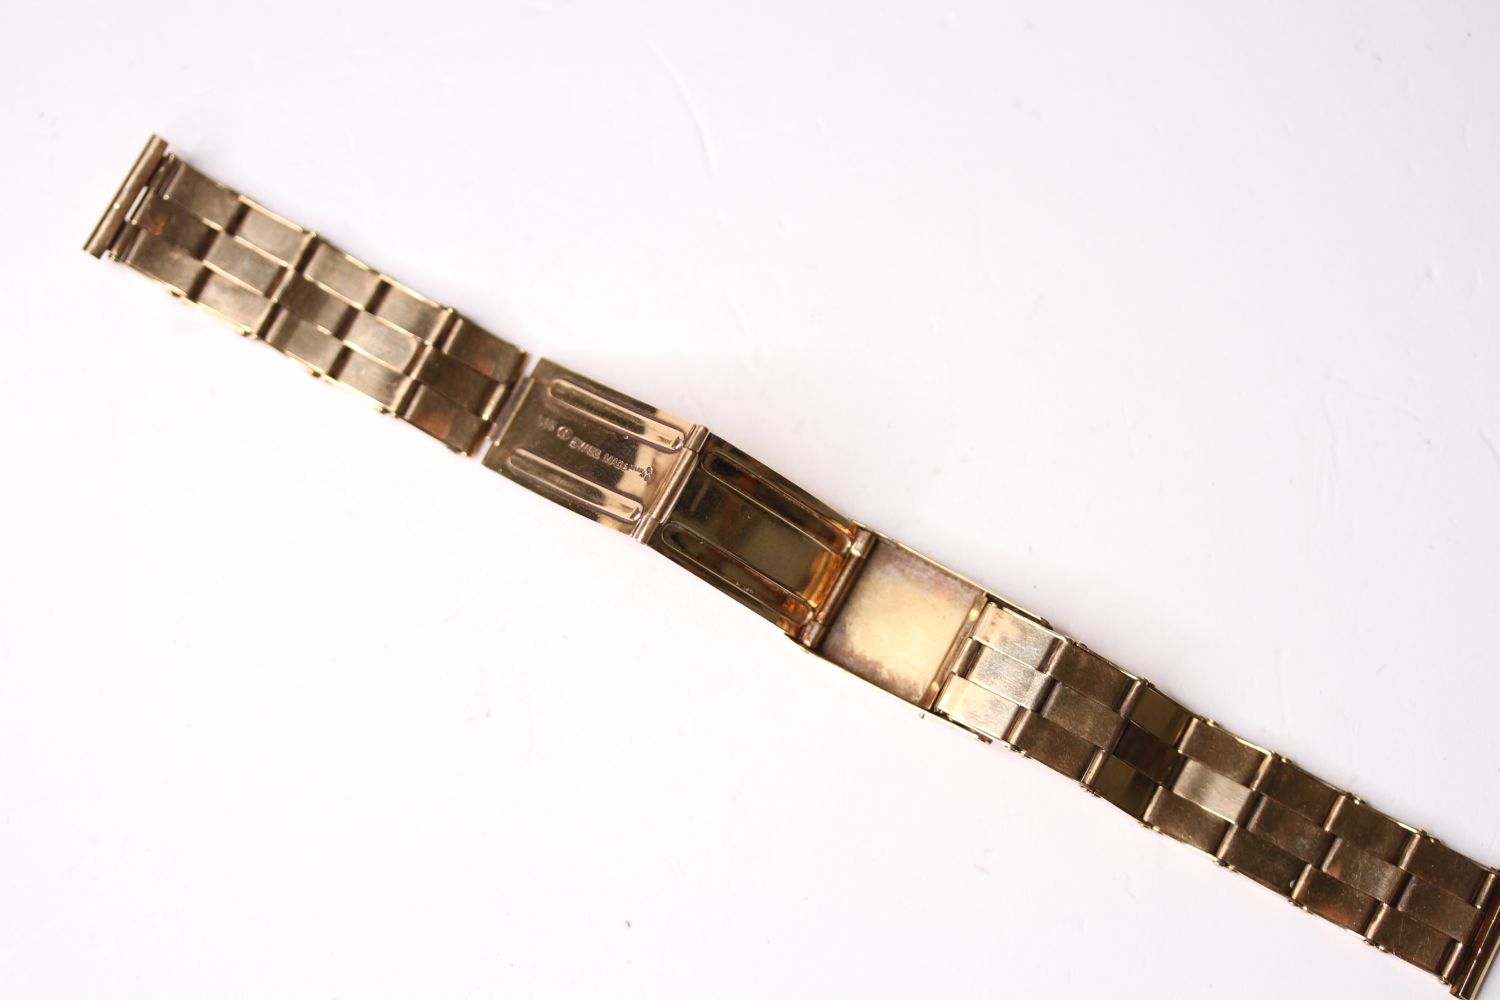 14CT VINTAGE EXPANDABLE BRACELET, stamped 14ct yellow gold, mecan 1956, approximately 35.1g. - Image 3 of 3